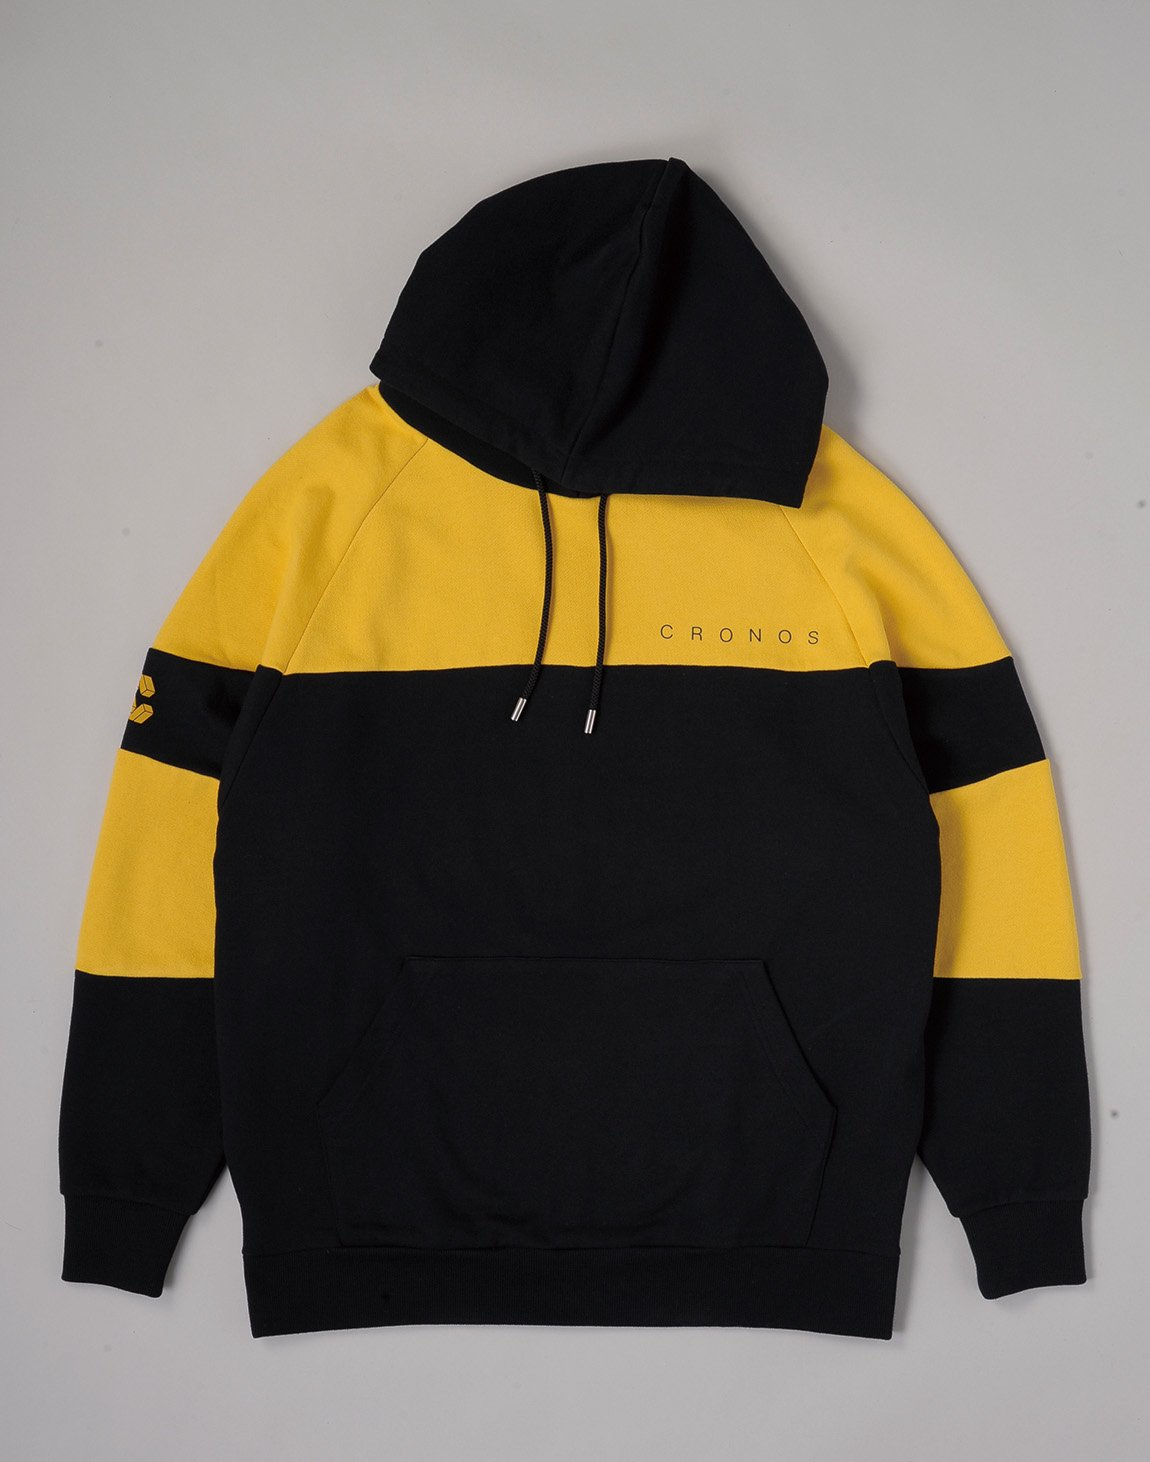 <img class='new_mark_img1' src='https://img.shop-pro.jp/img/new/icons55.gif' style='border:none;display:inline;margin:0px;padding:0px;width:auto;' />CRONOS CUT BACK BASIC HOODIE【BLACKxYELLOW】